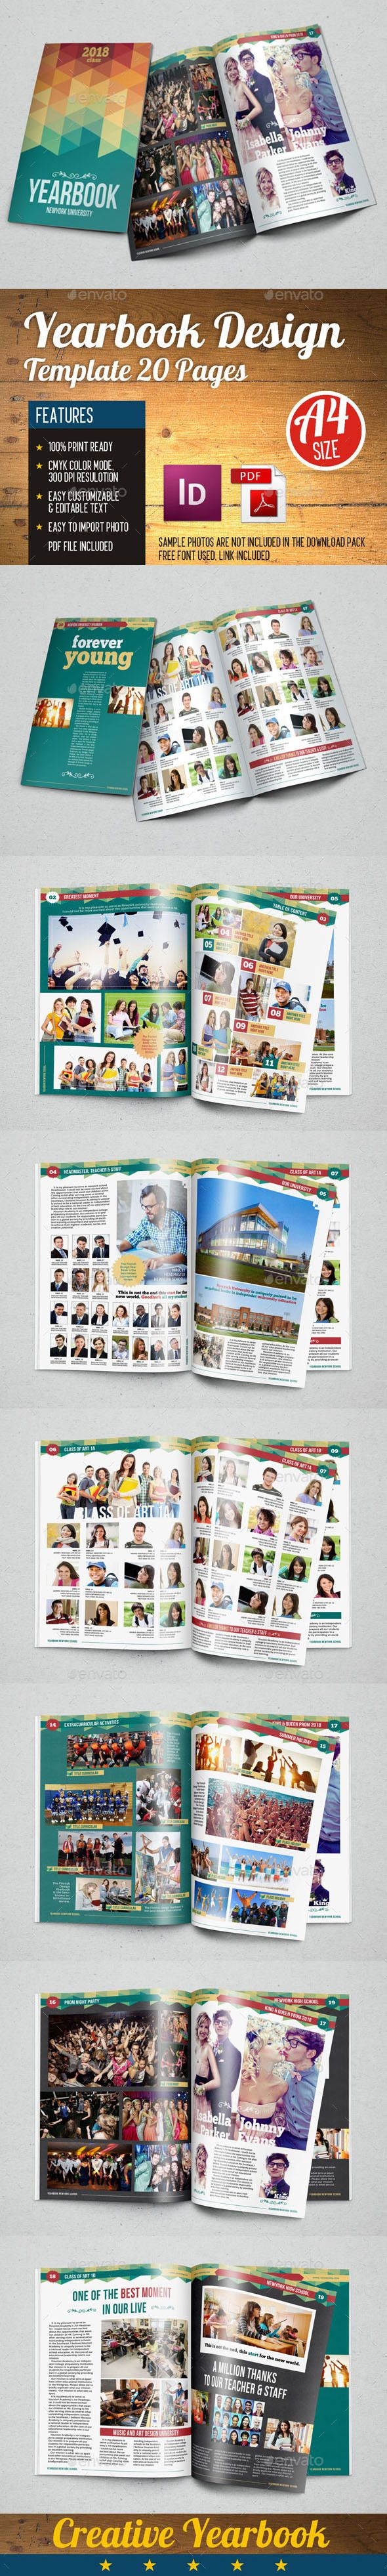 Pin By Best Graphic Design On Photo Album Templates Pinterest